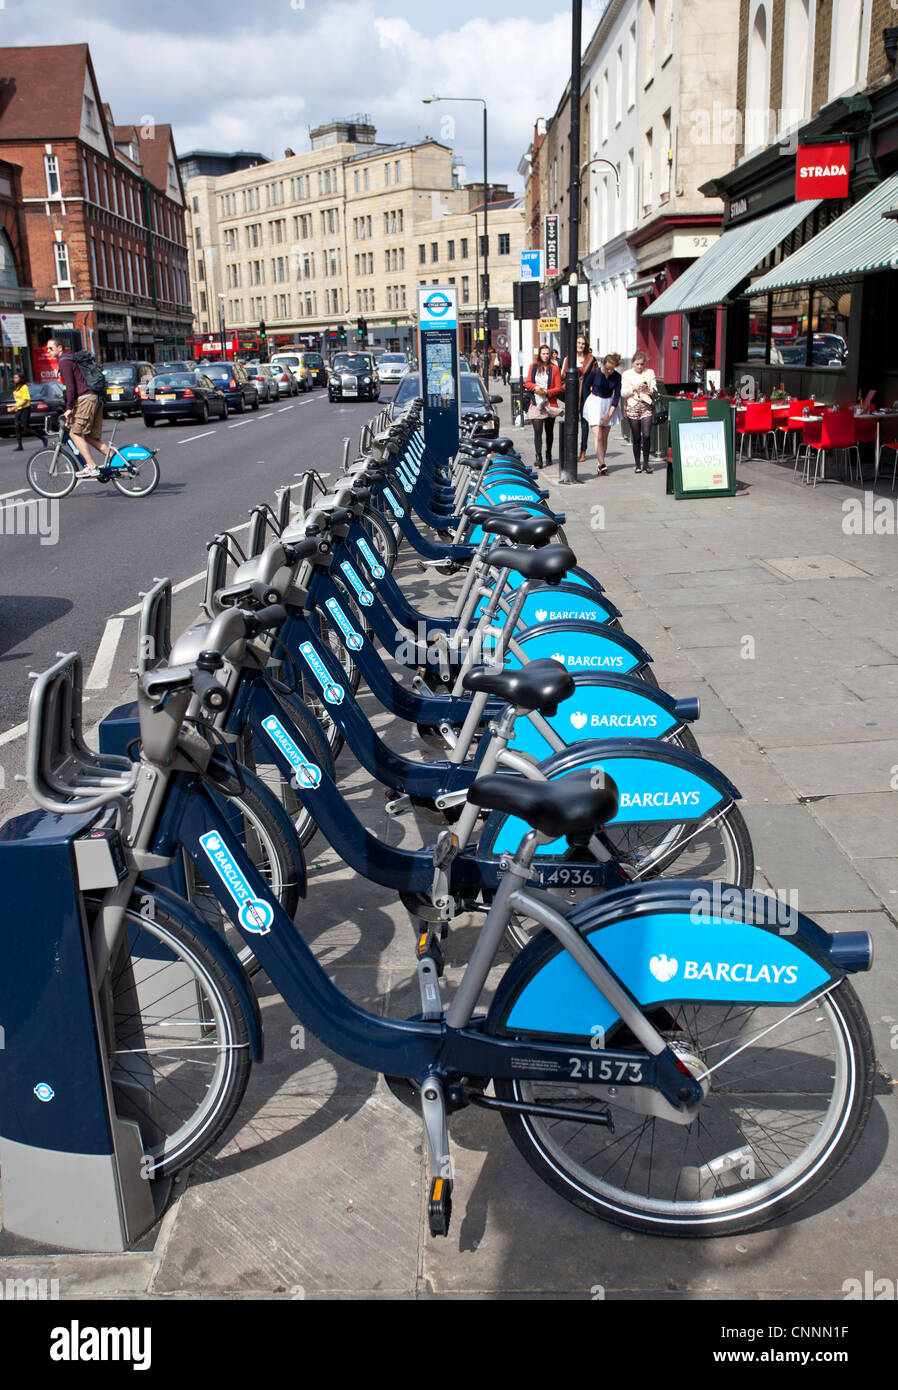 Bicycle docking station as part of the new London's Barclay's bicycle hire scheme, London, NW1, England, - Stock Image